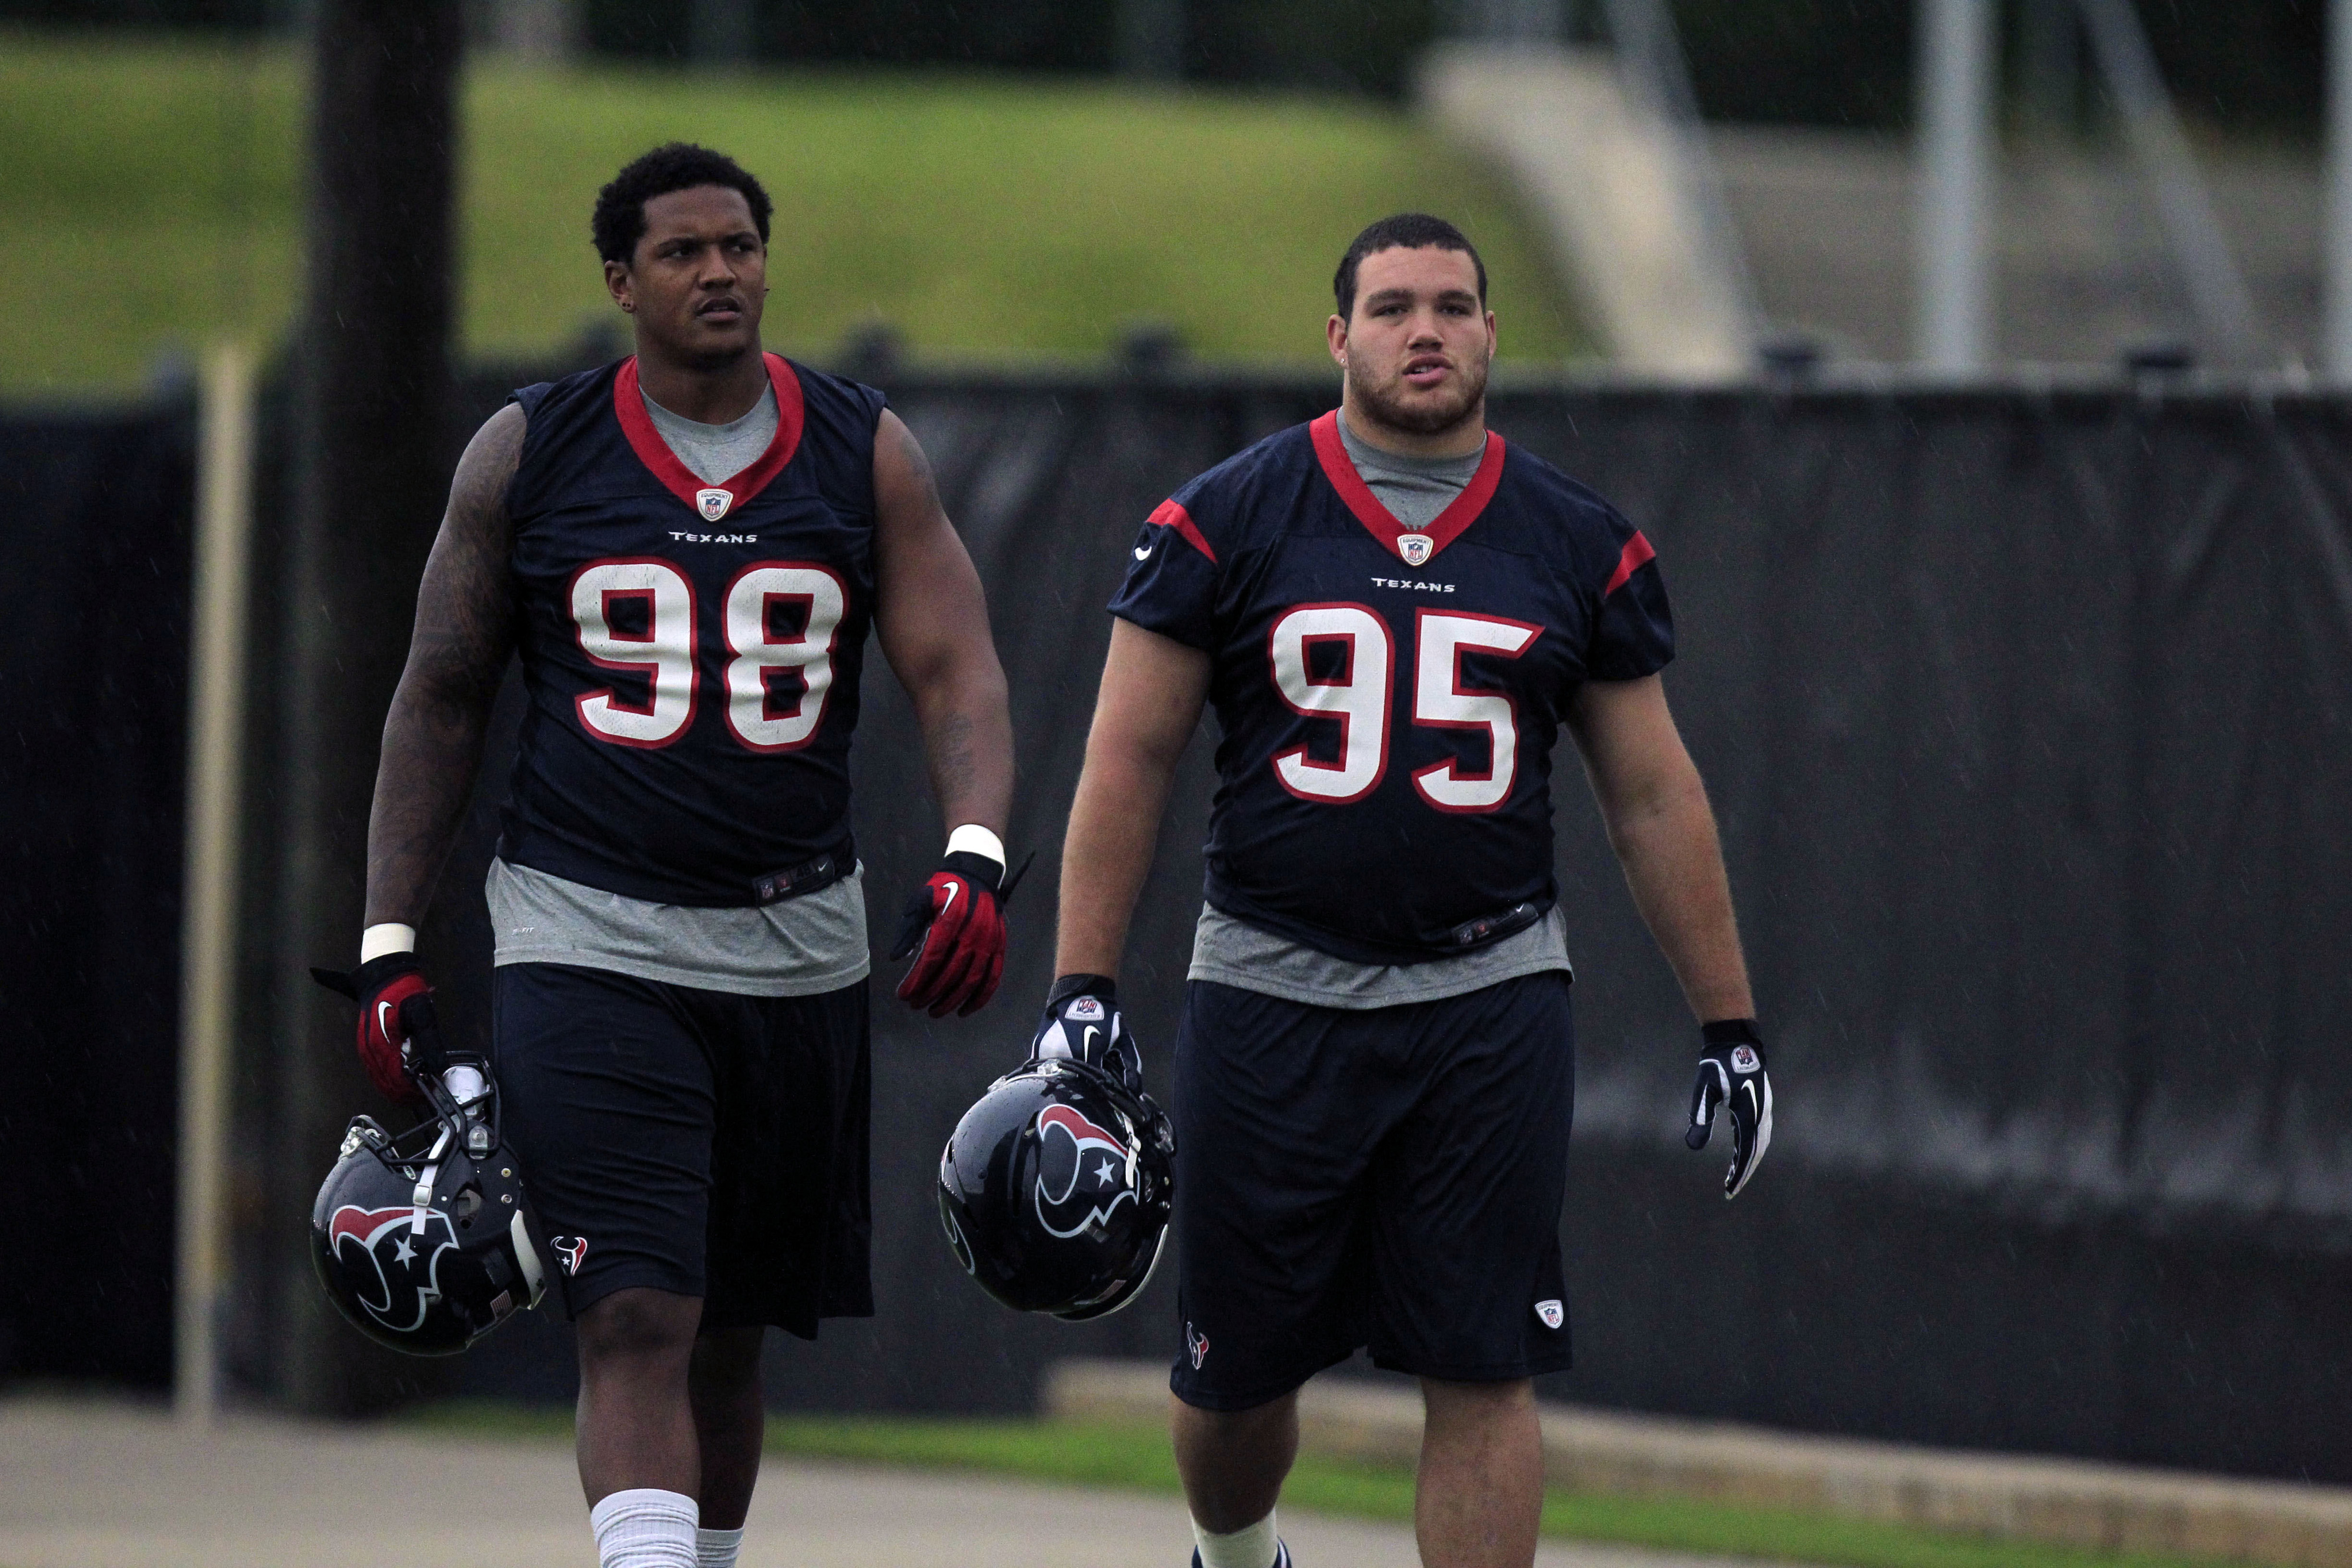 Will Browner be joining Chris Jones on the way out of Reliant Park today?